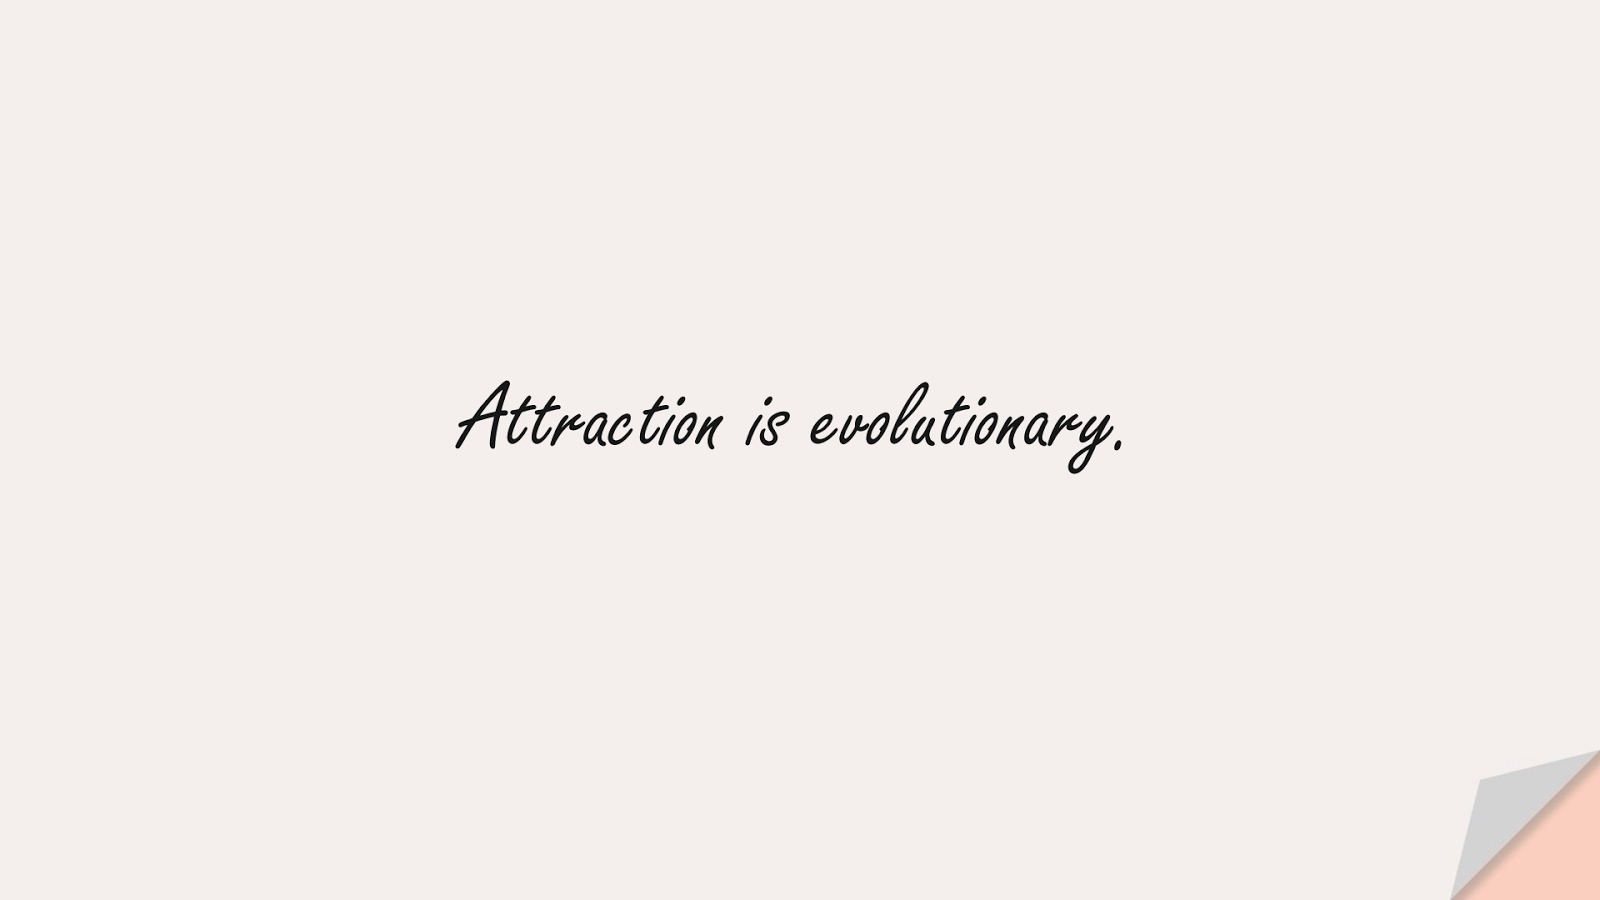 Attraction is evolutionary.FALSE